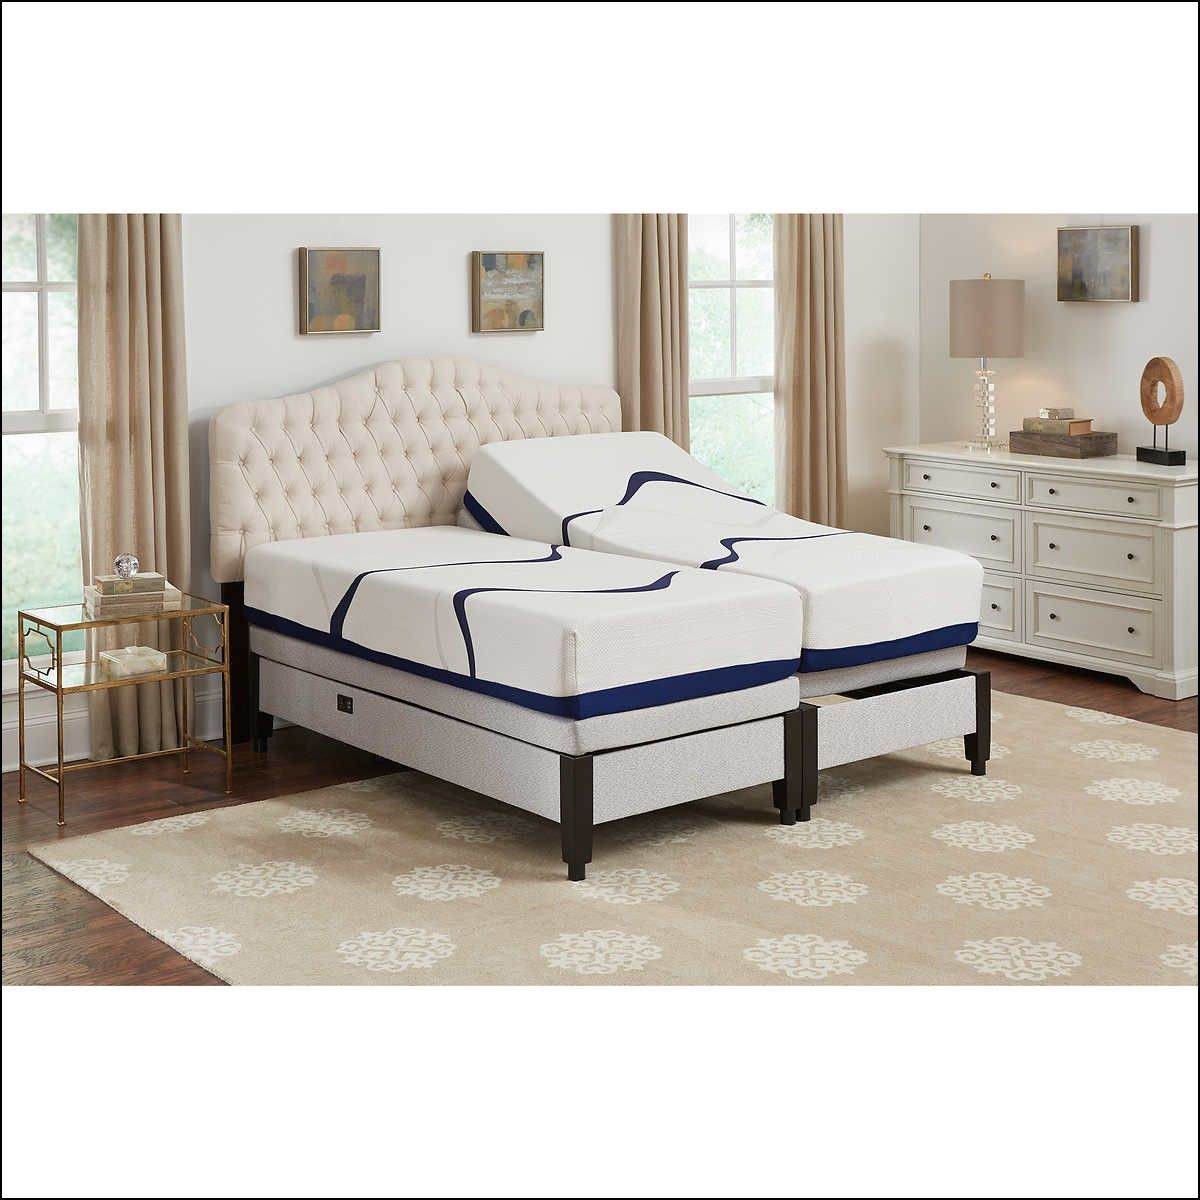 Adjustable Bed Frame for Memory Foam Mattress Adjustable